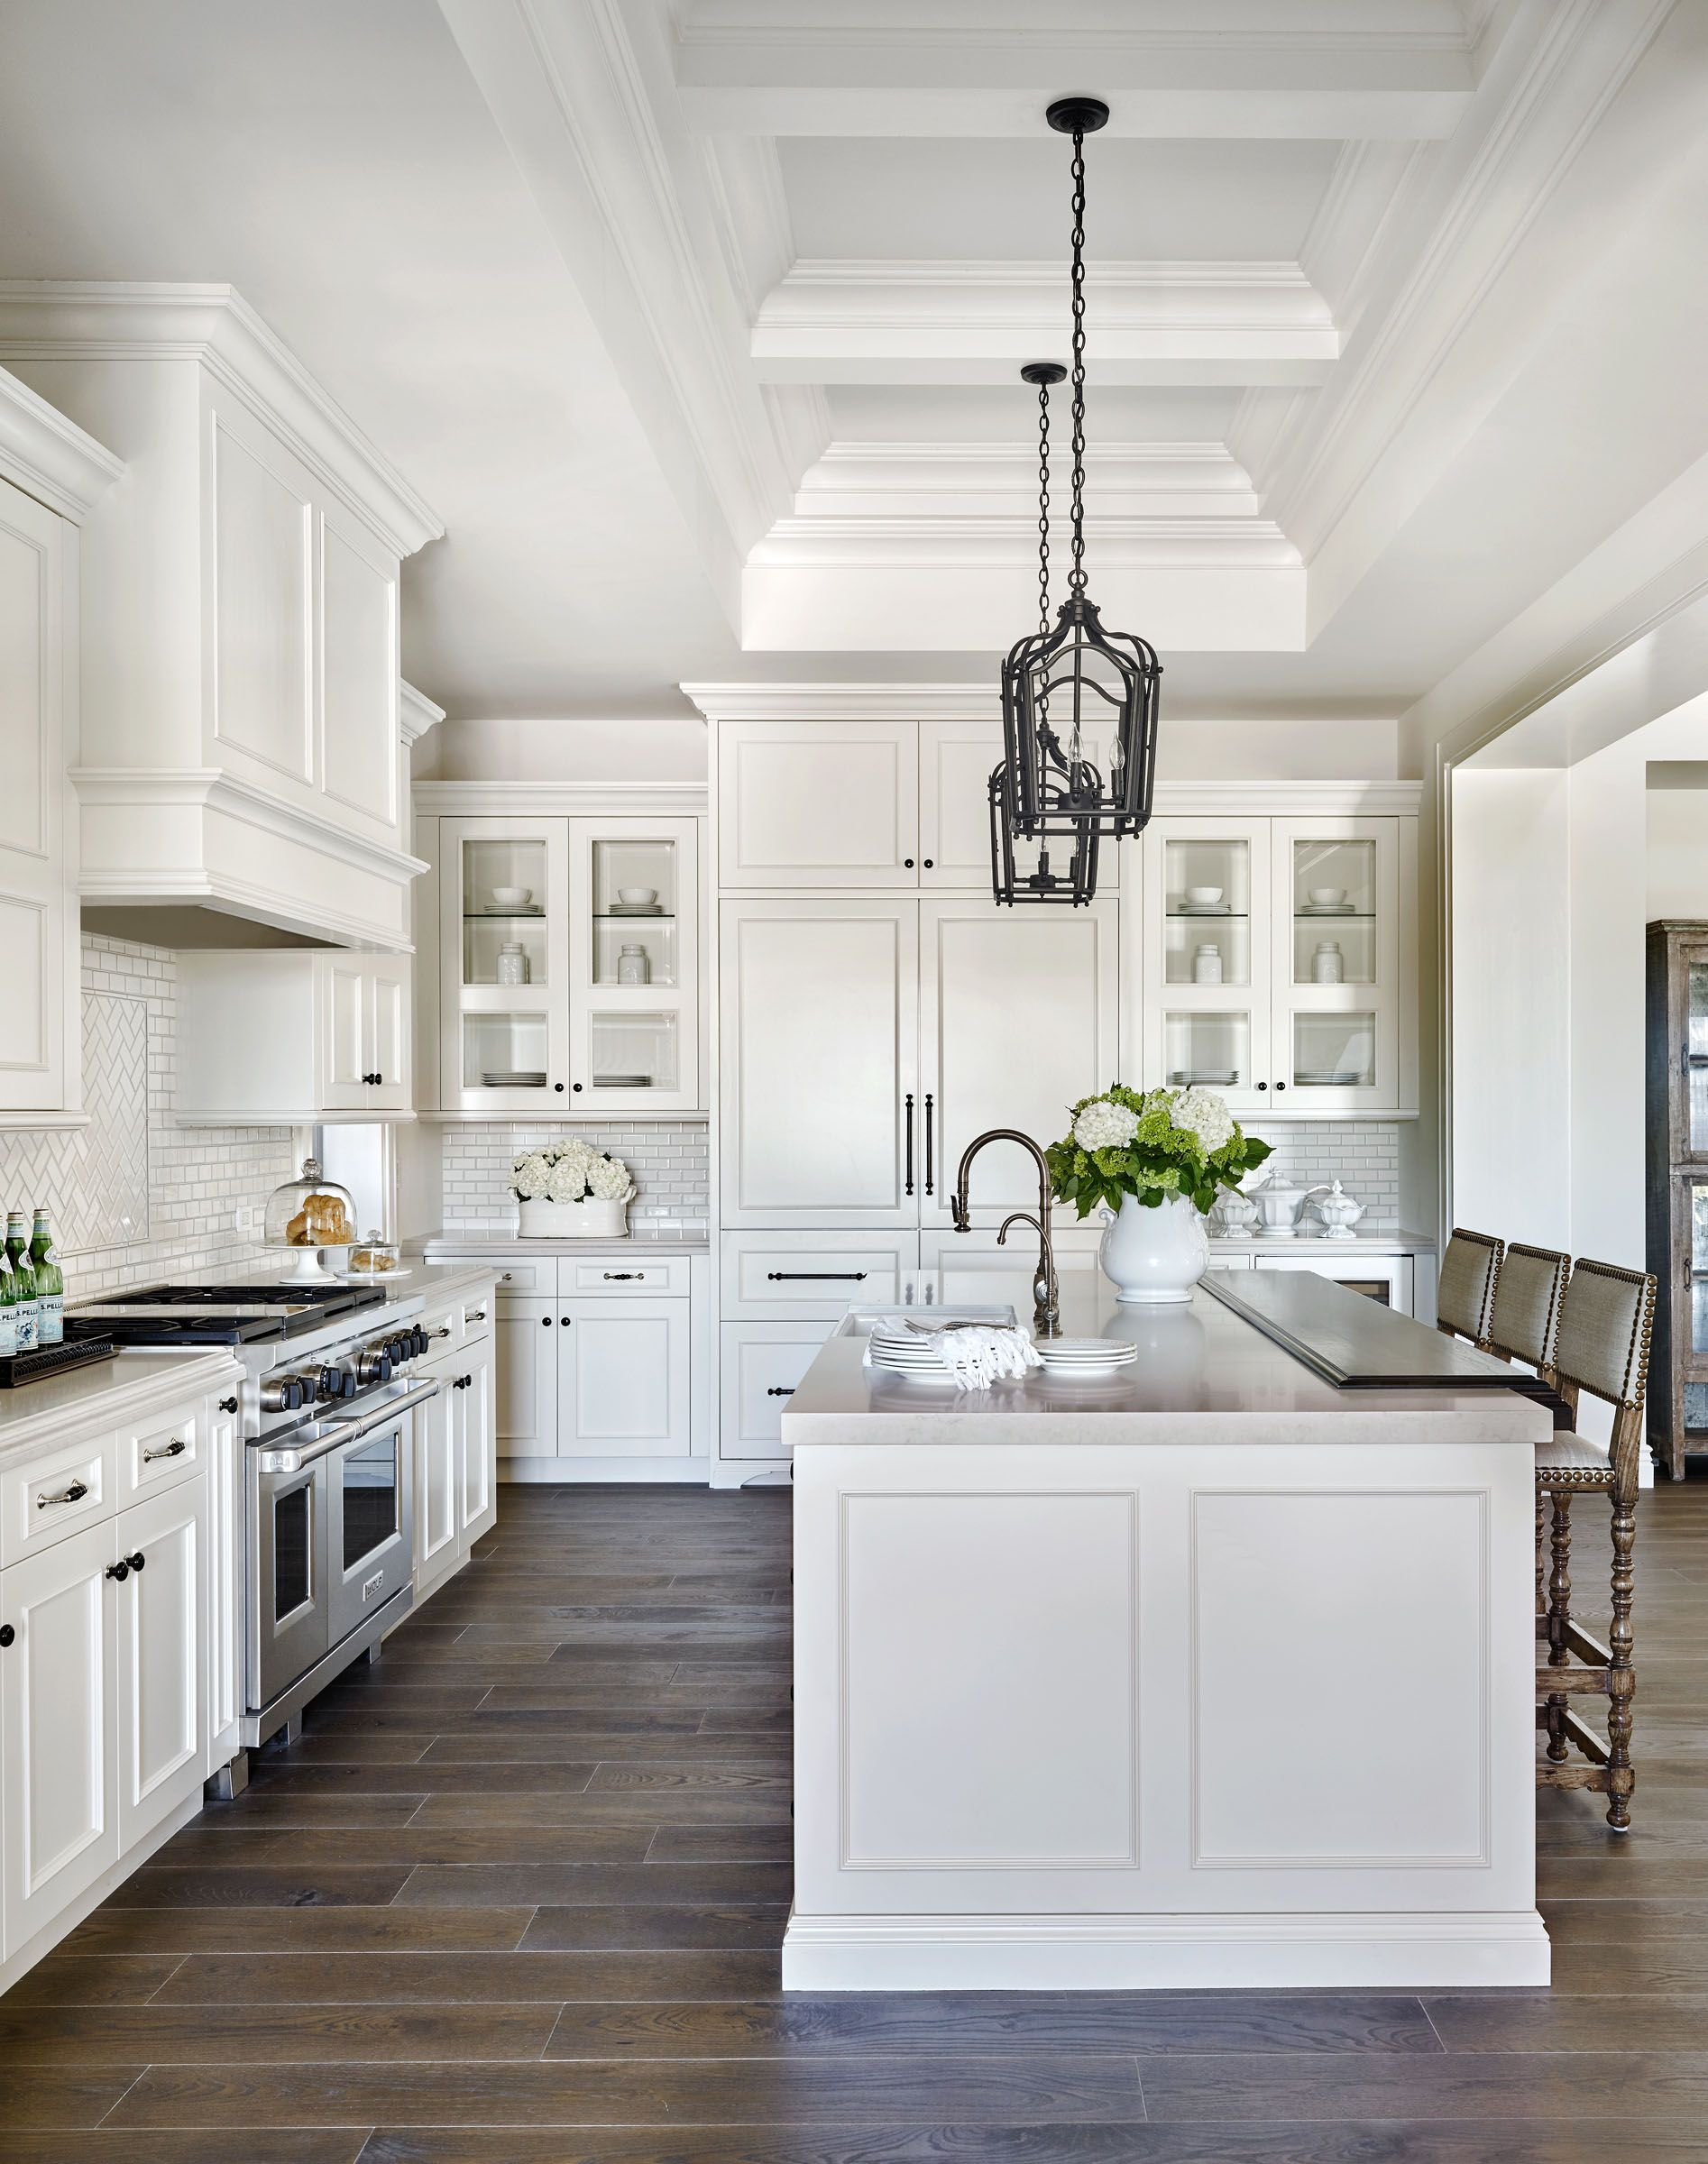 Pinterest Cabinets Kitchen Elegant Kitchen With White Marble And Hardwood Floor